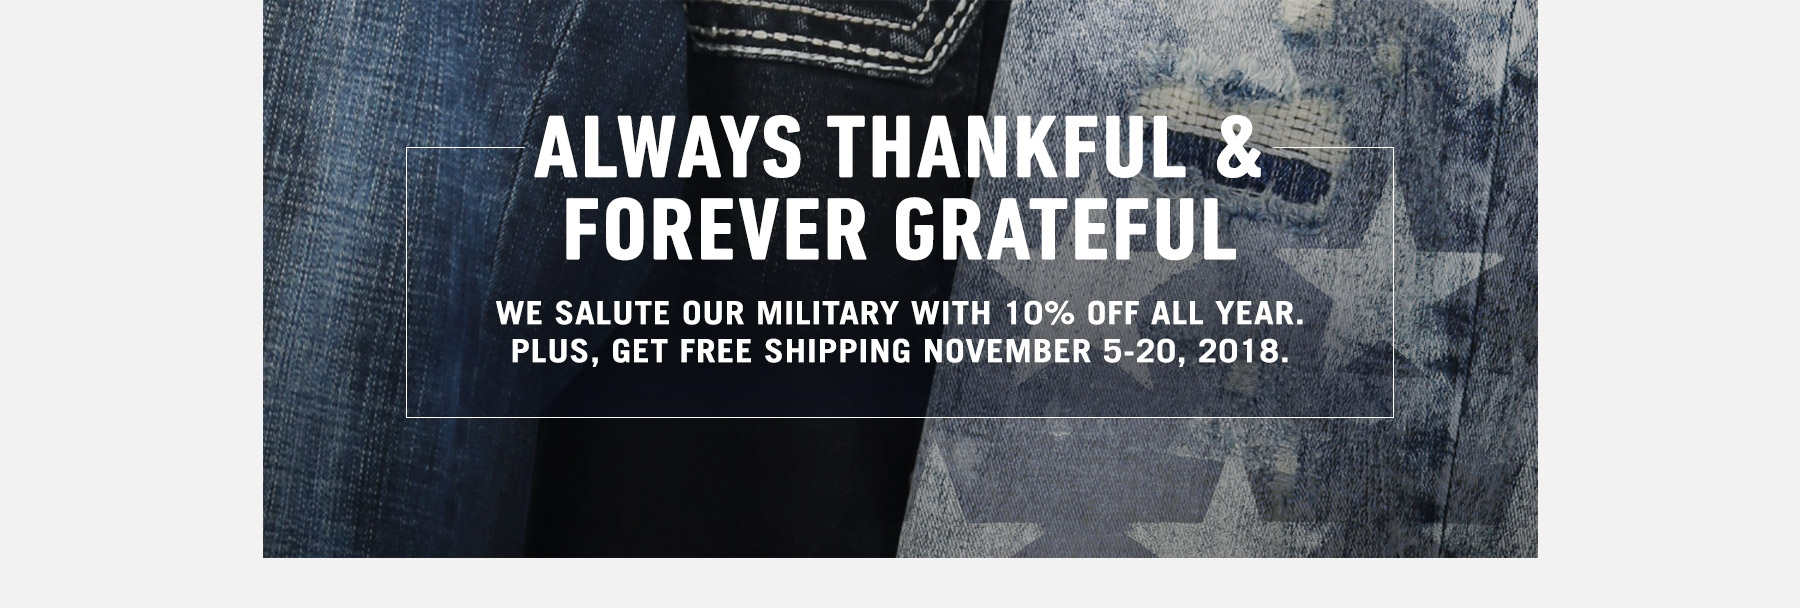 Verified Military Accounts get Free Shipping at Buckle. November 5-20, 2018.